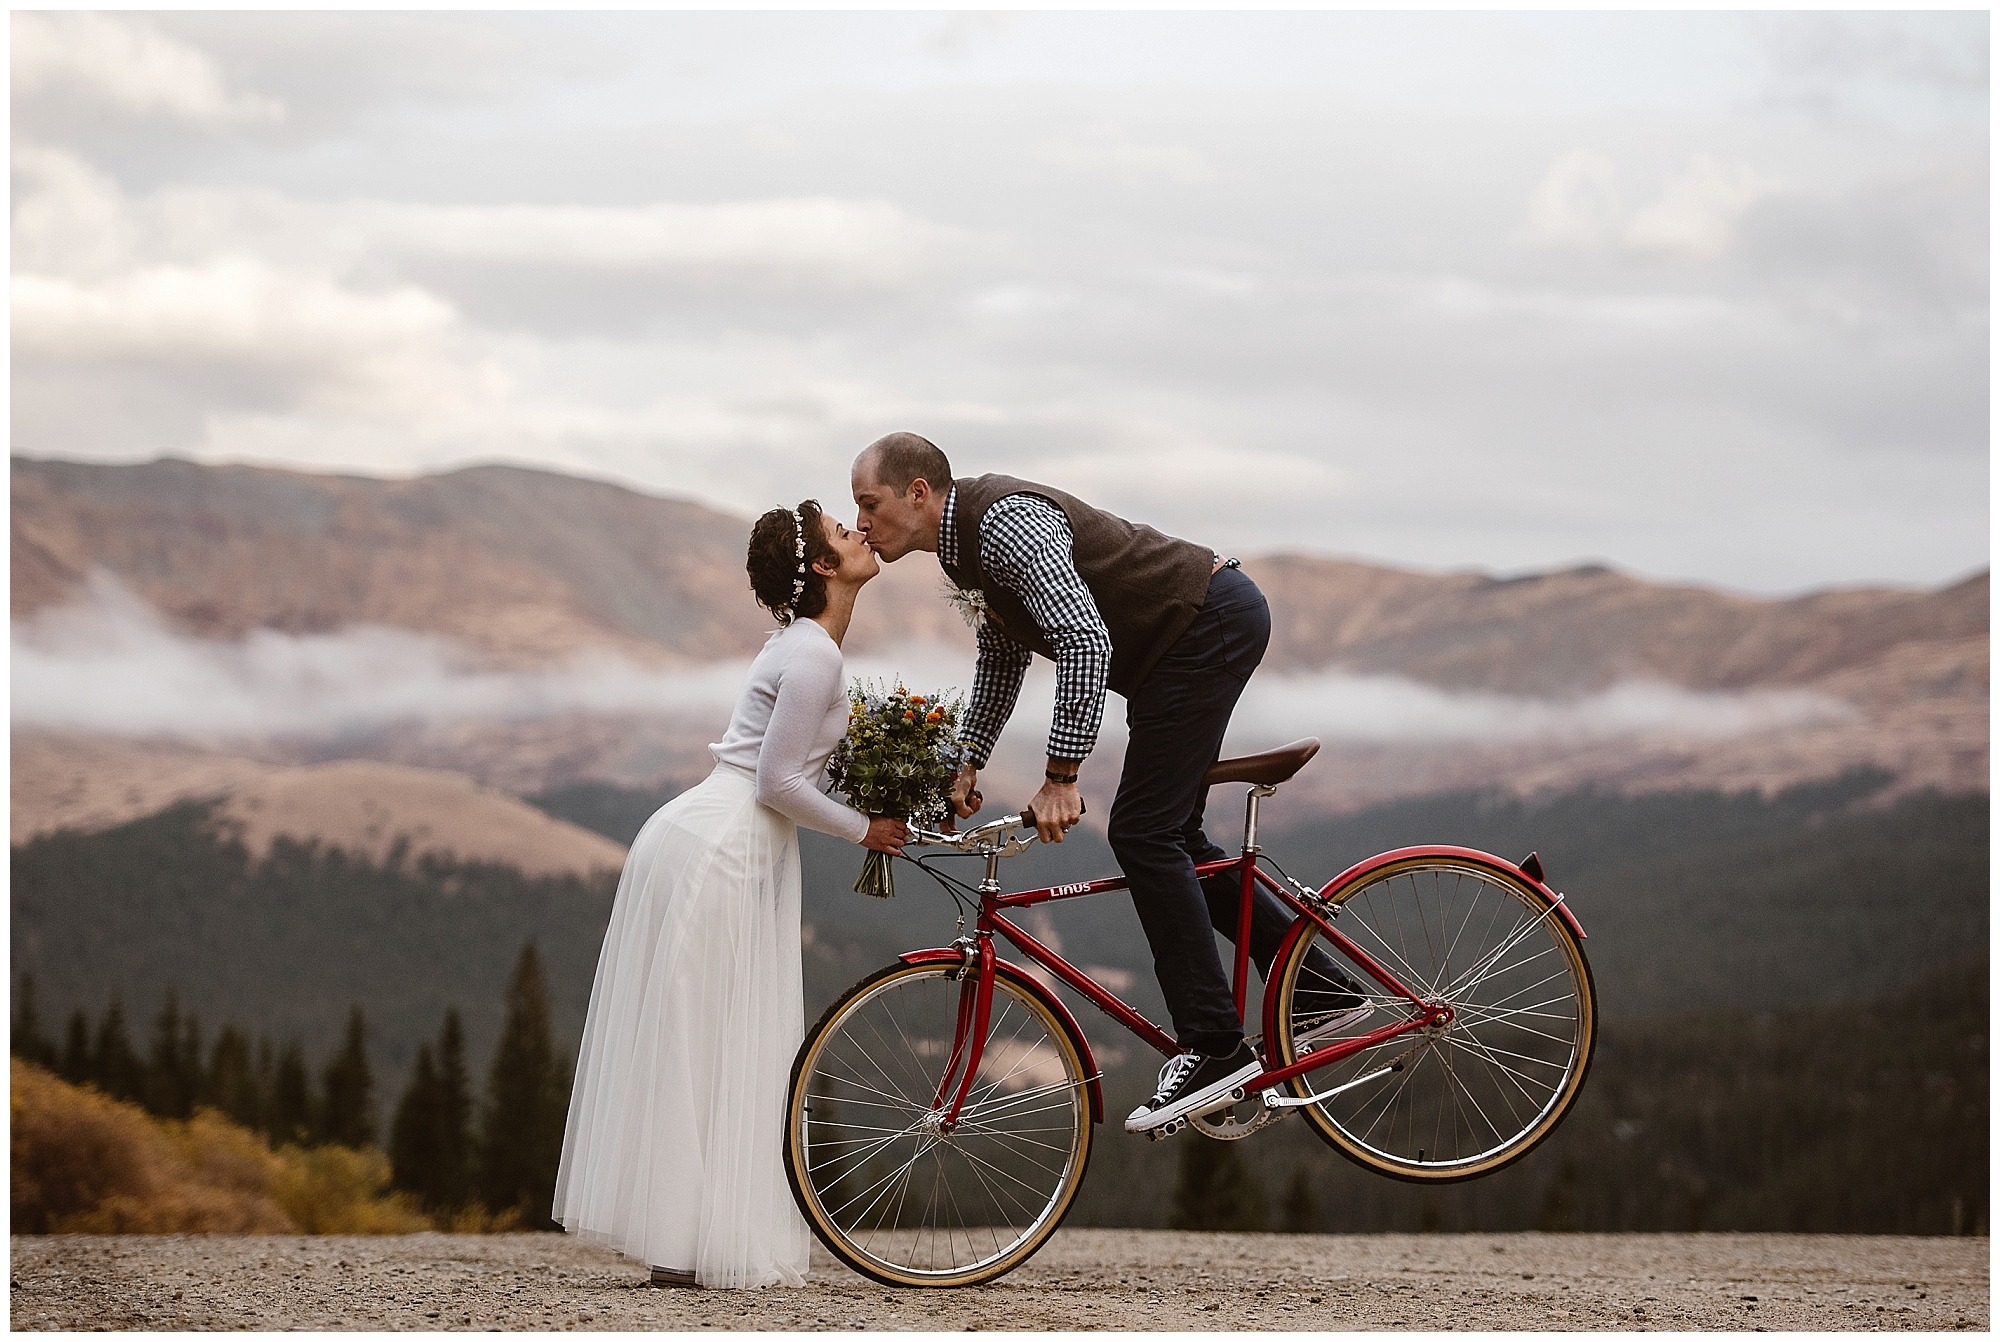 An elopement allows you the freedom to add in elements of your personality to your wedding day, like this couple. Where you elope and how you say your vows matters! Photo by Maddie Mae, Adventure Instead Elopement Photographers.